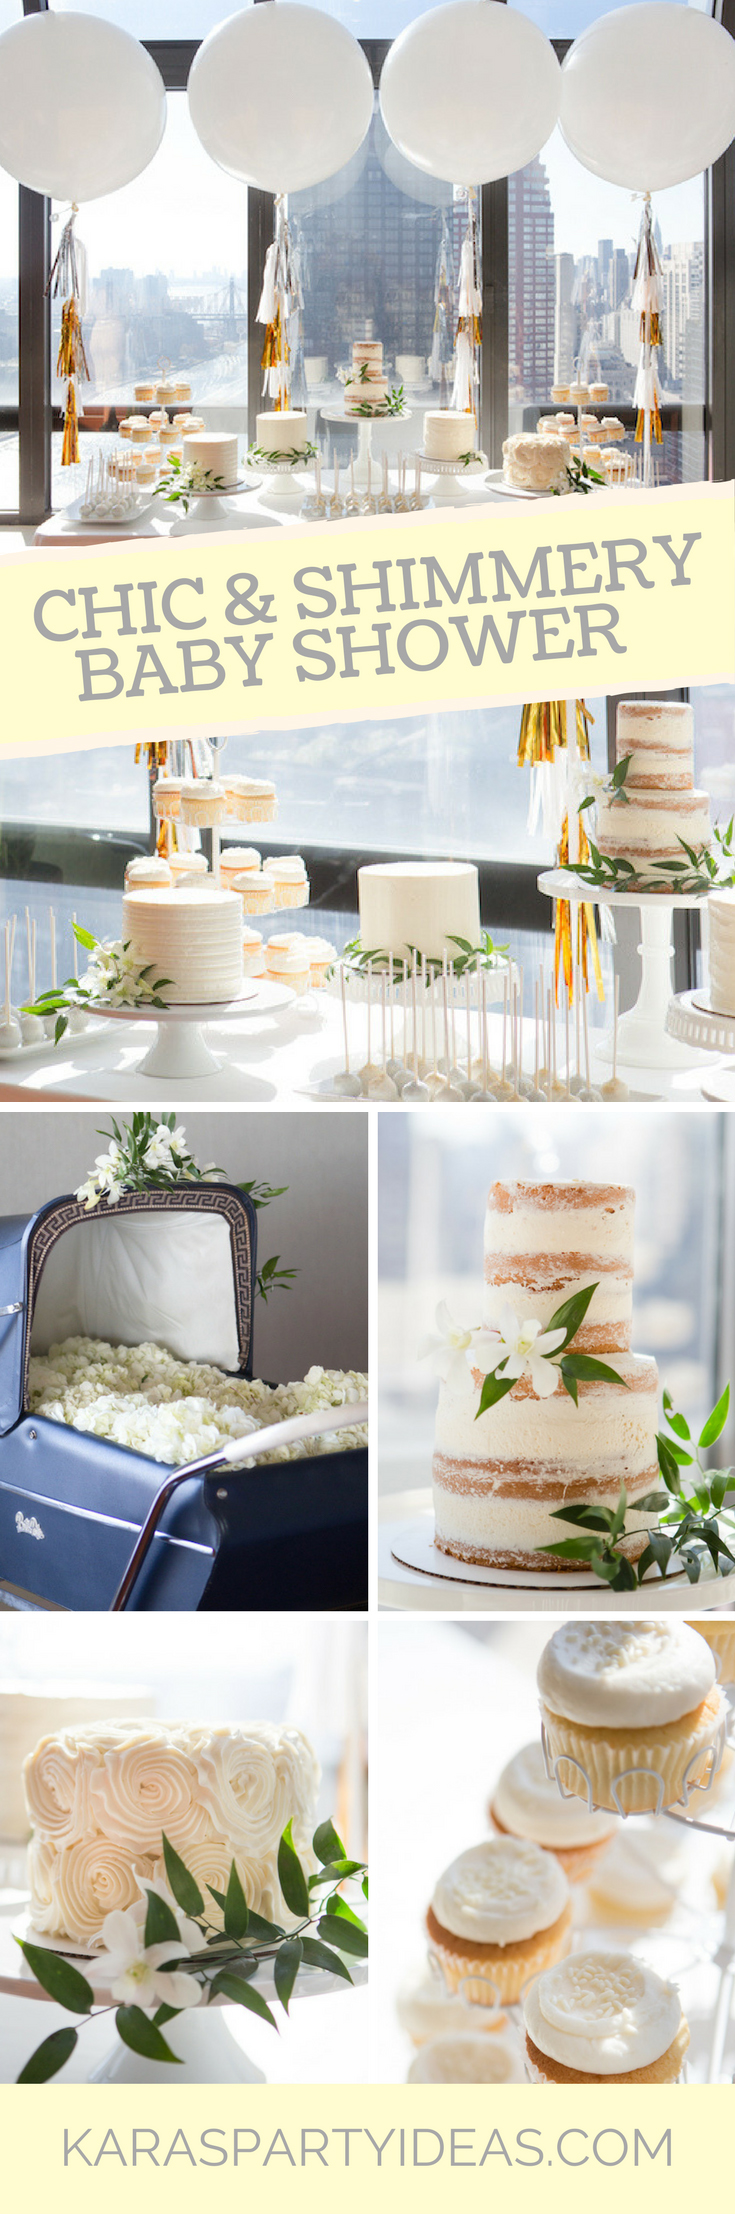 Chic and Shimmery Baby Shower - Karas Party Ideas via KarasPartyIdeas.com